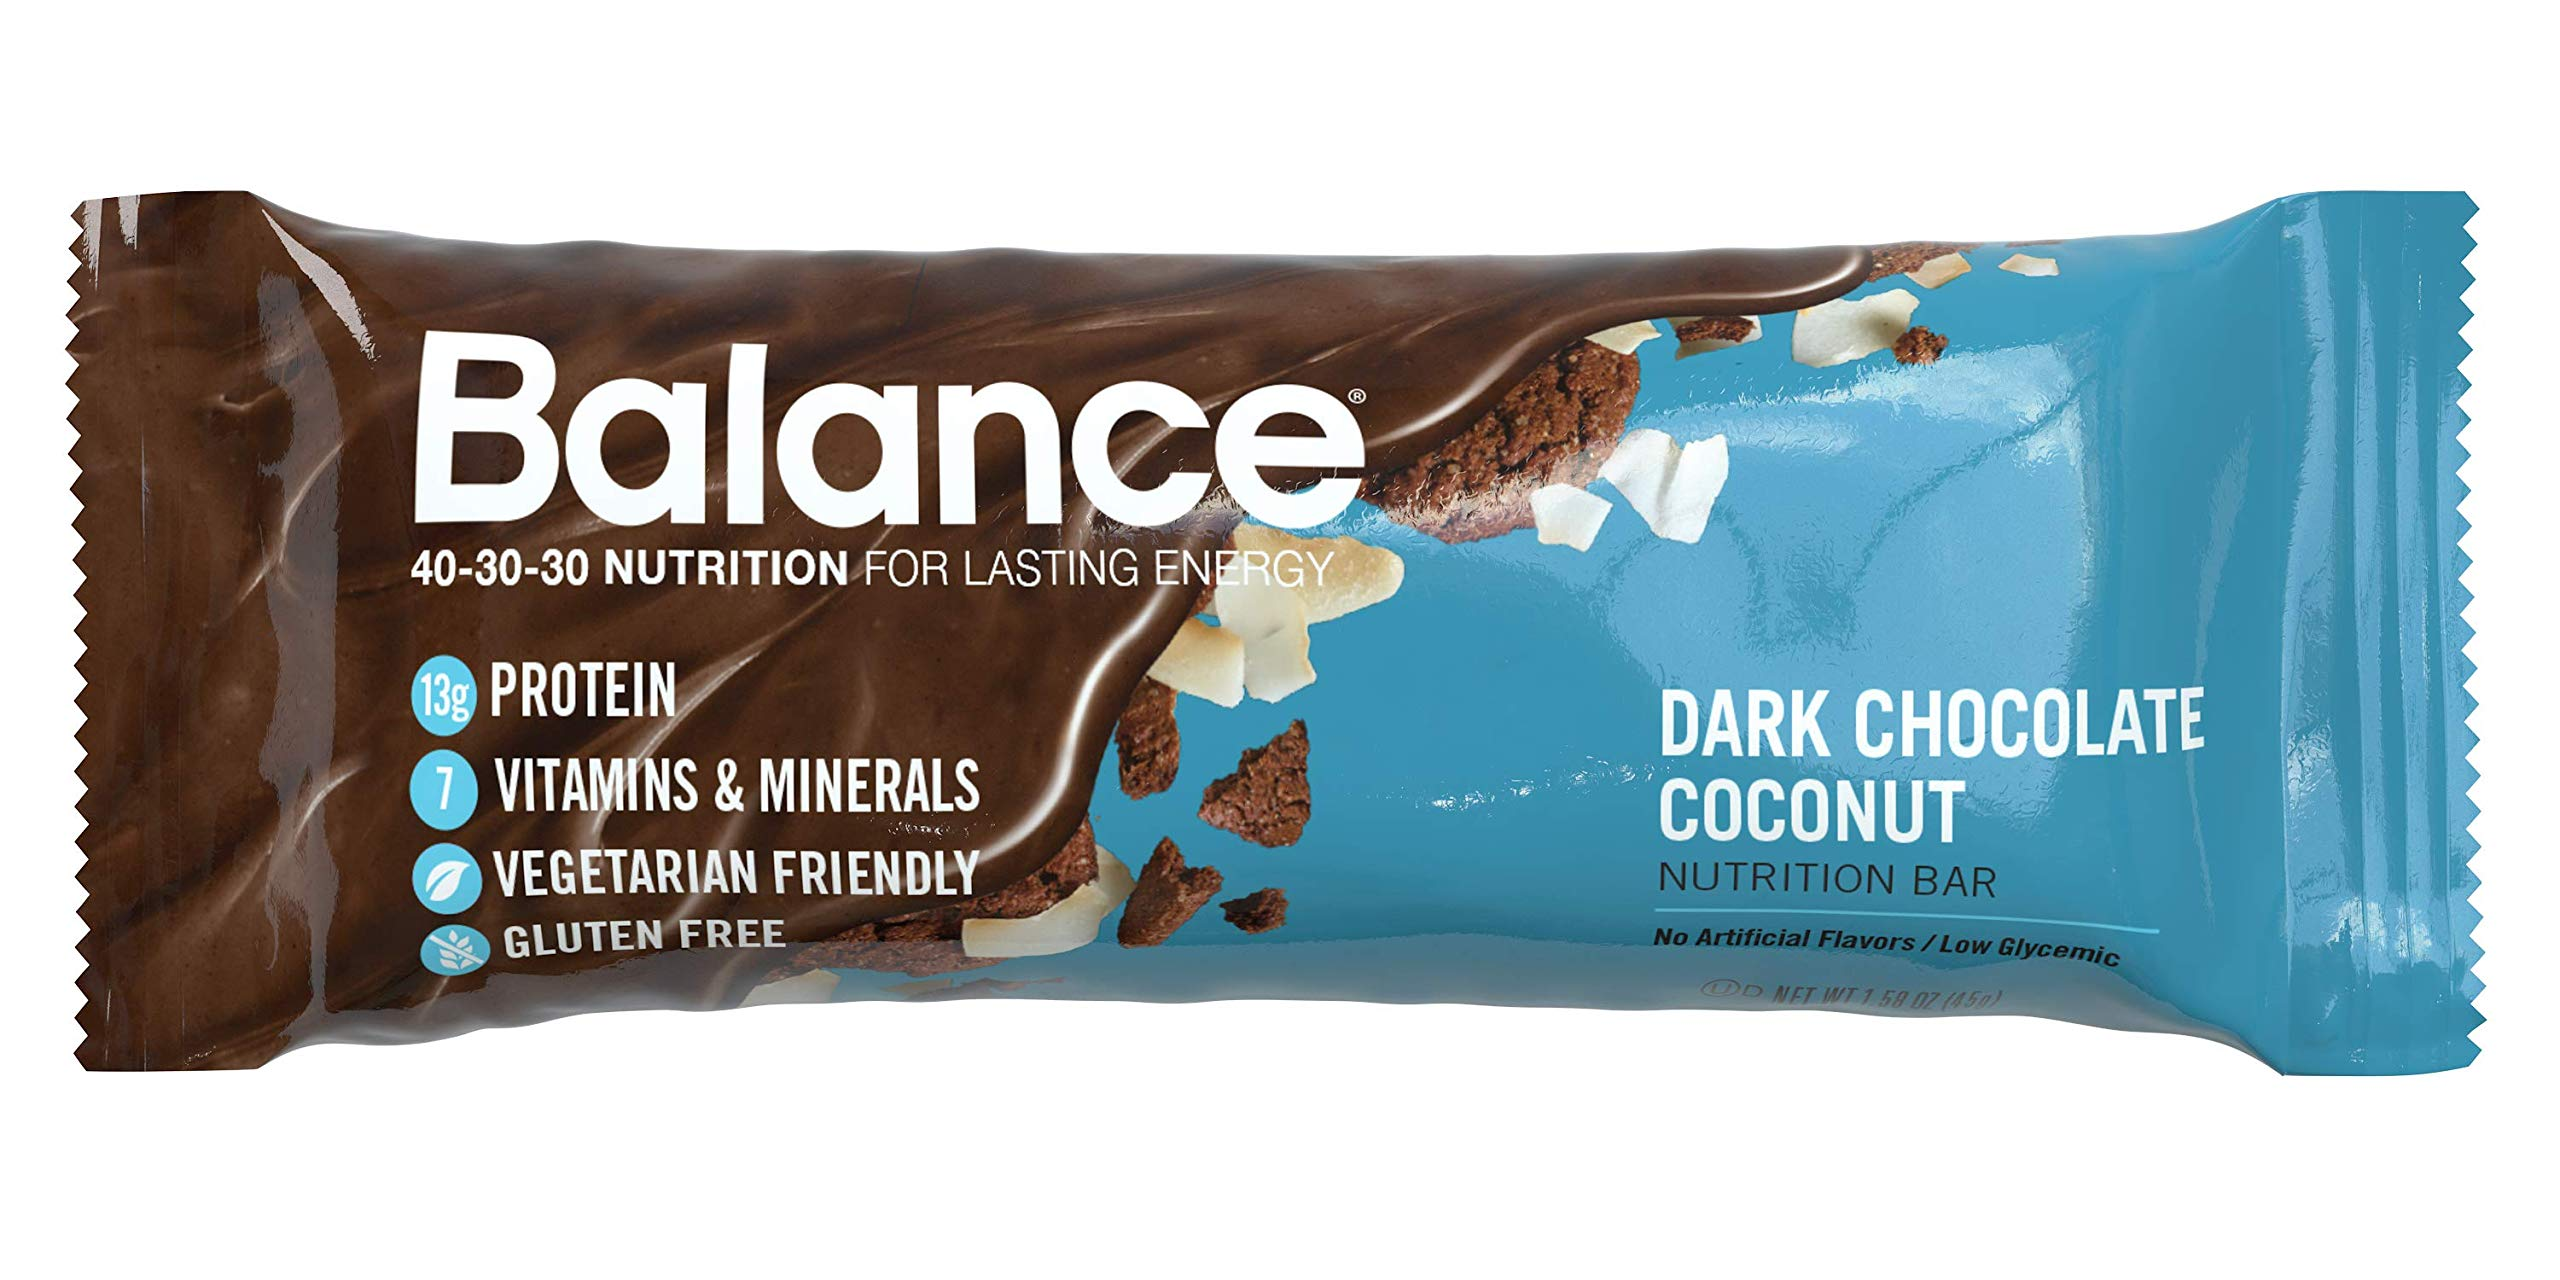 Balance Bar, Healthy Protein Snacks, Dark Chocolate Coconut, With Vitamin A, Vitamin C, and Vitamin D to Support Immune Health, 1.58 oz, Pack of 6